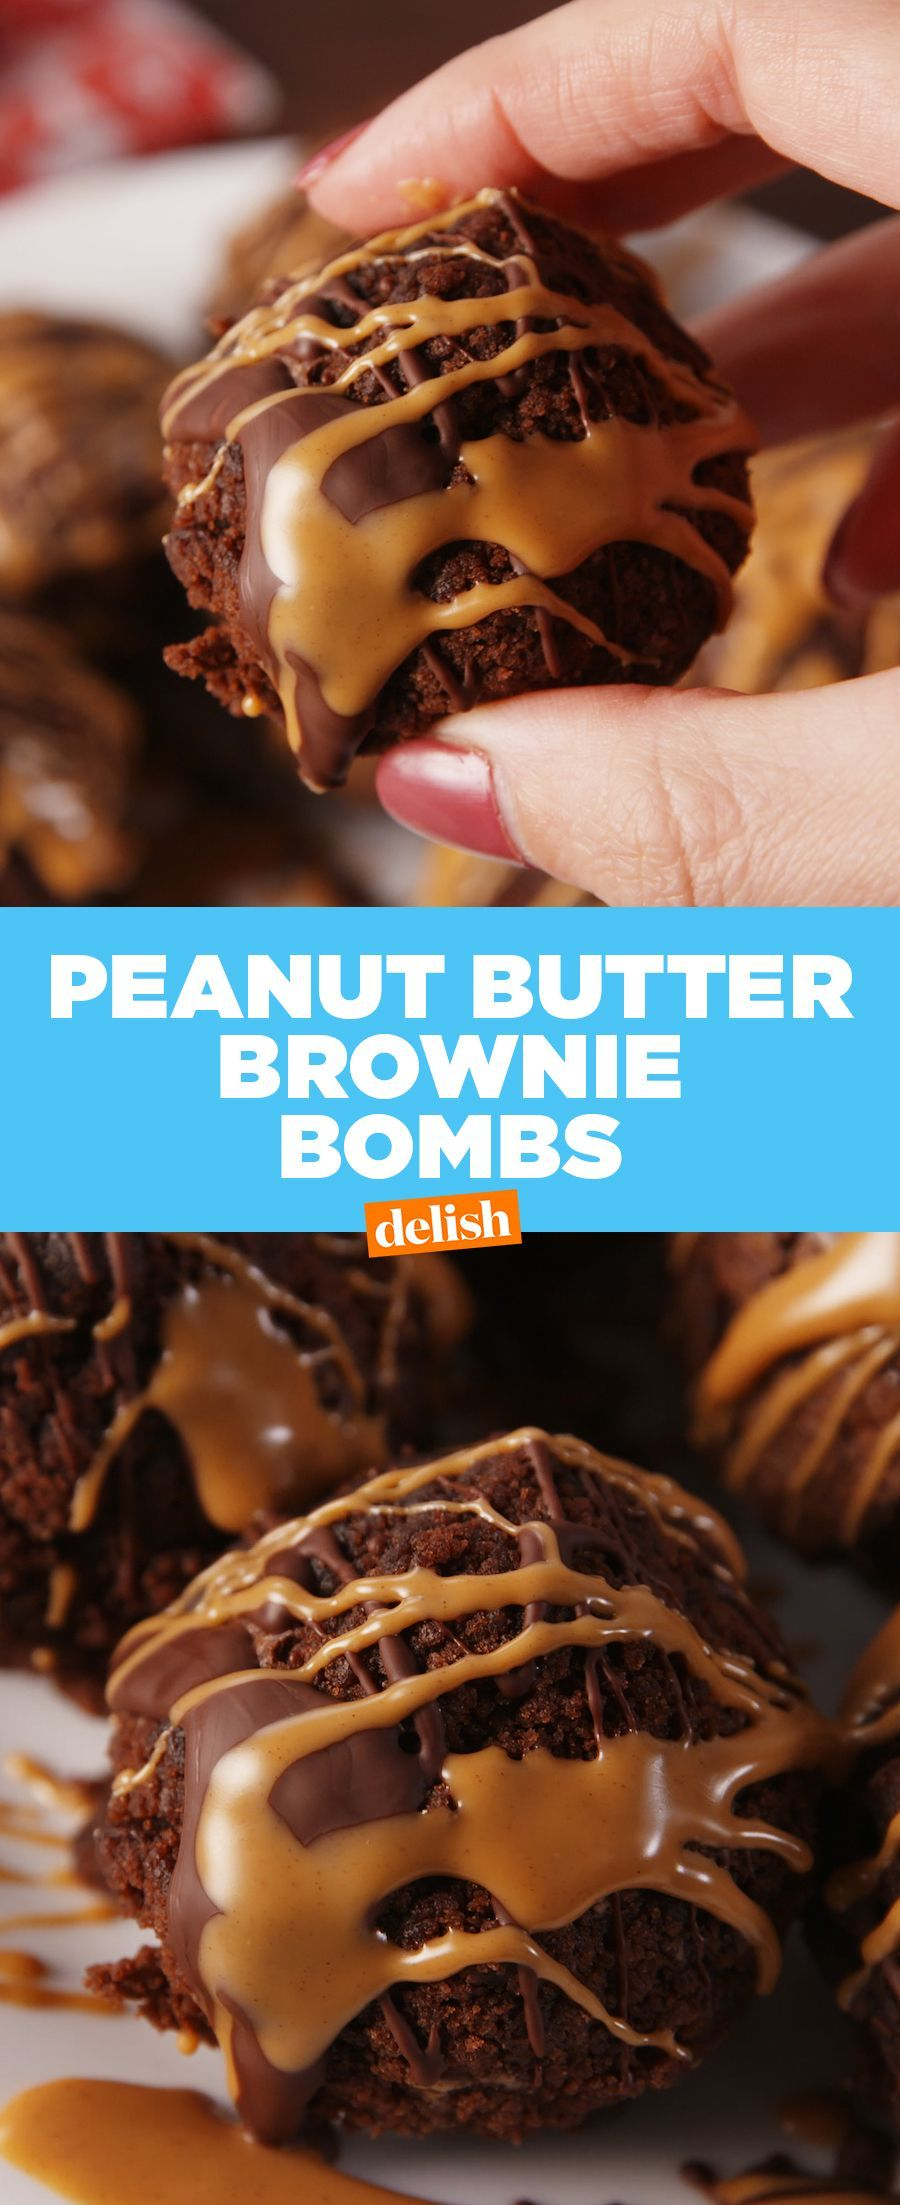 Peanut Butter Brownie Bombs #peanutbuttersquares